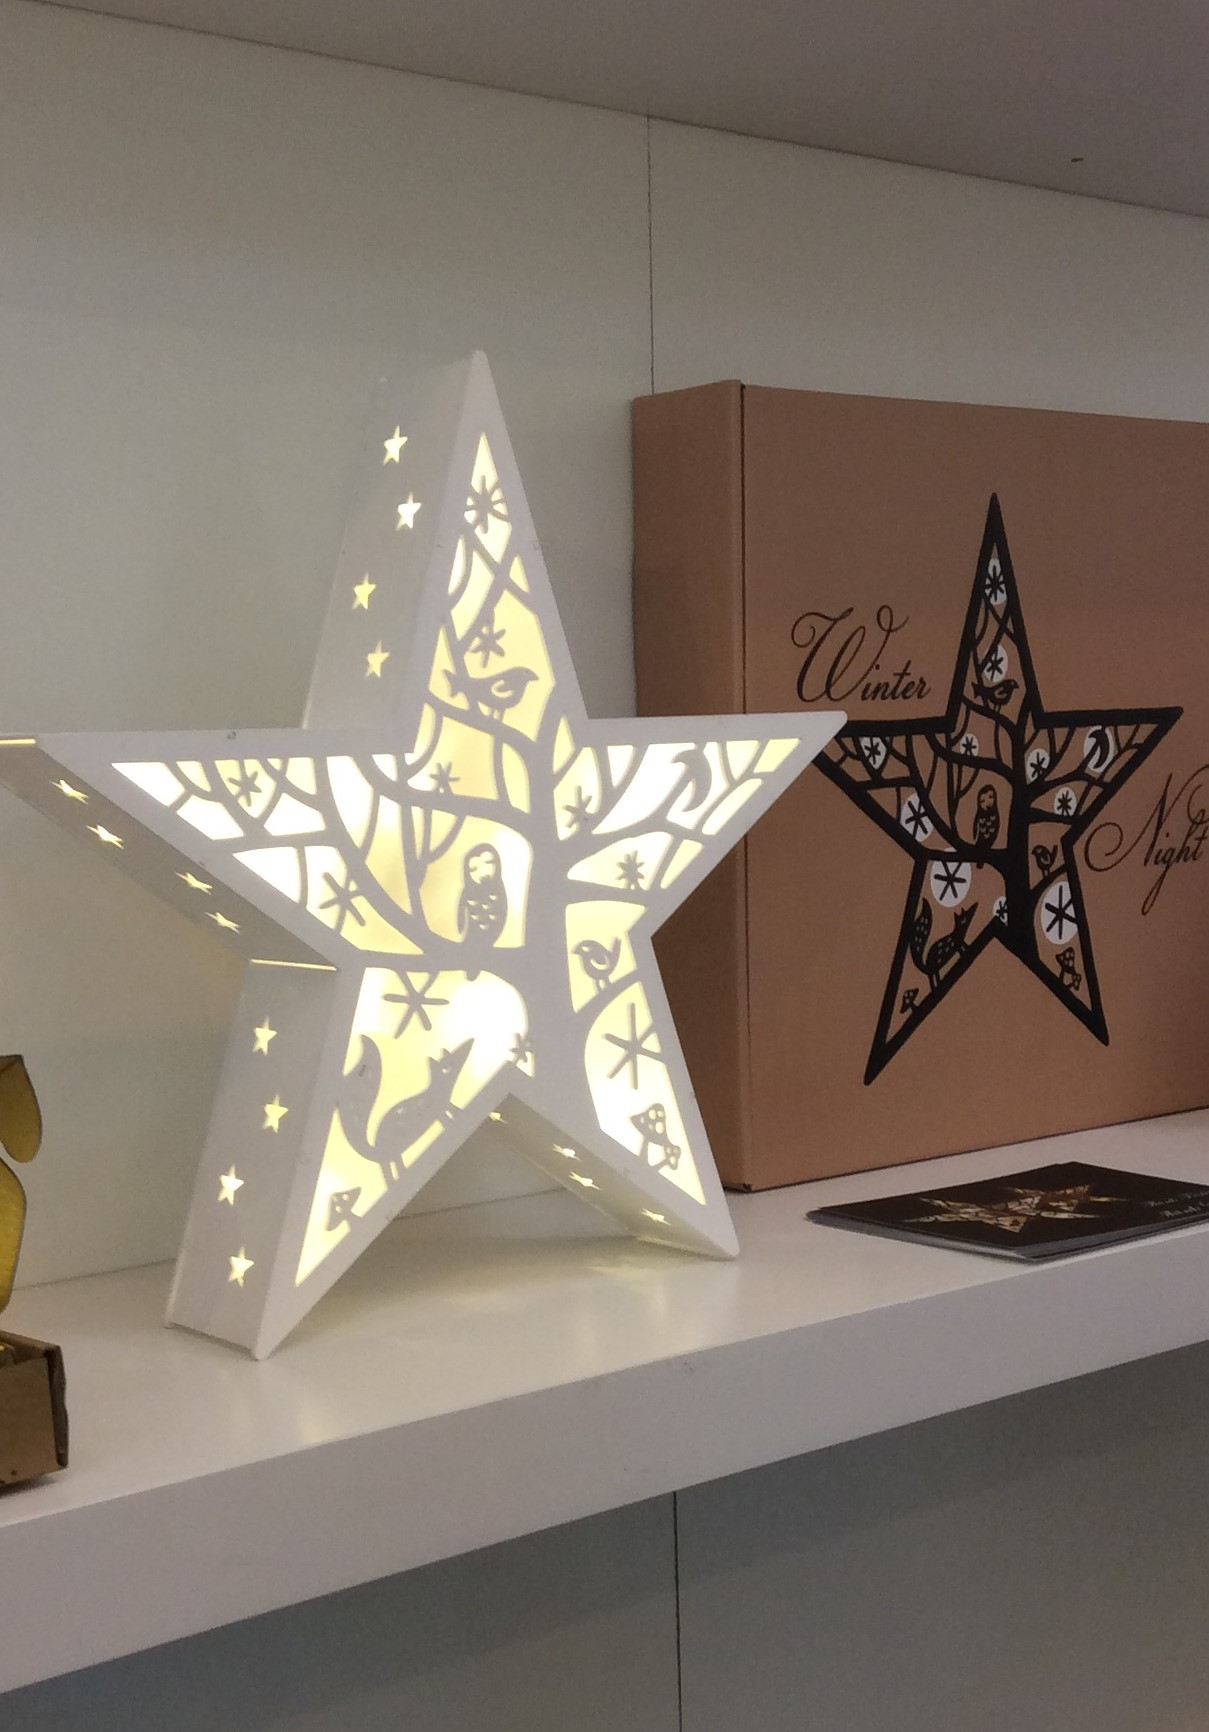 Led Winter Star Light Auradecor Designsauradecor Designs